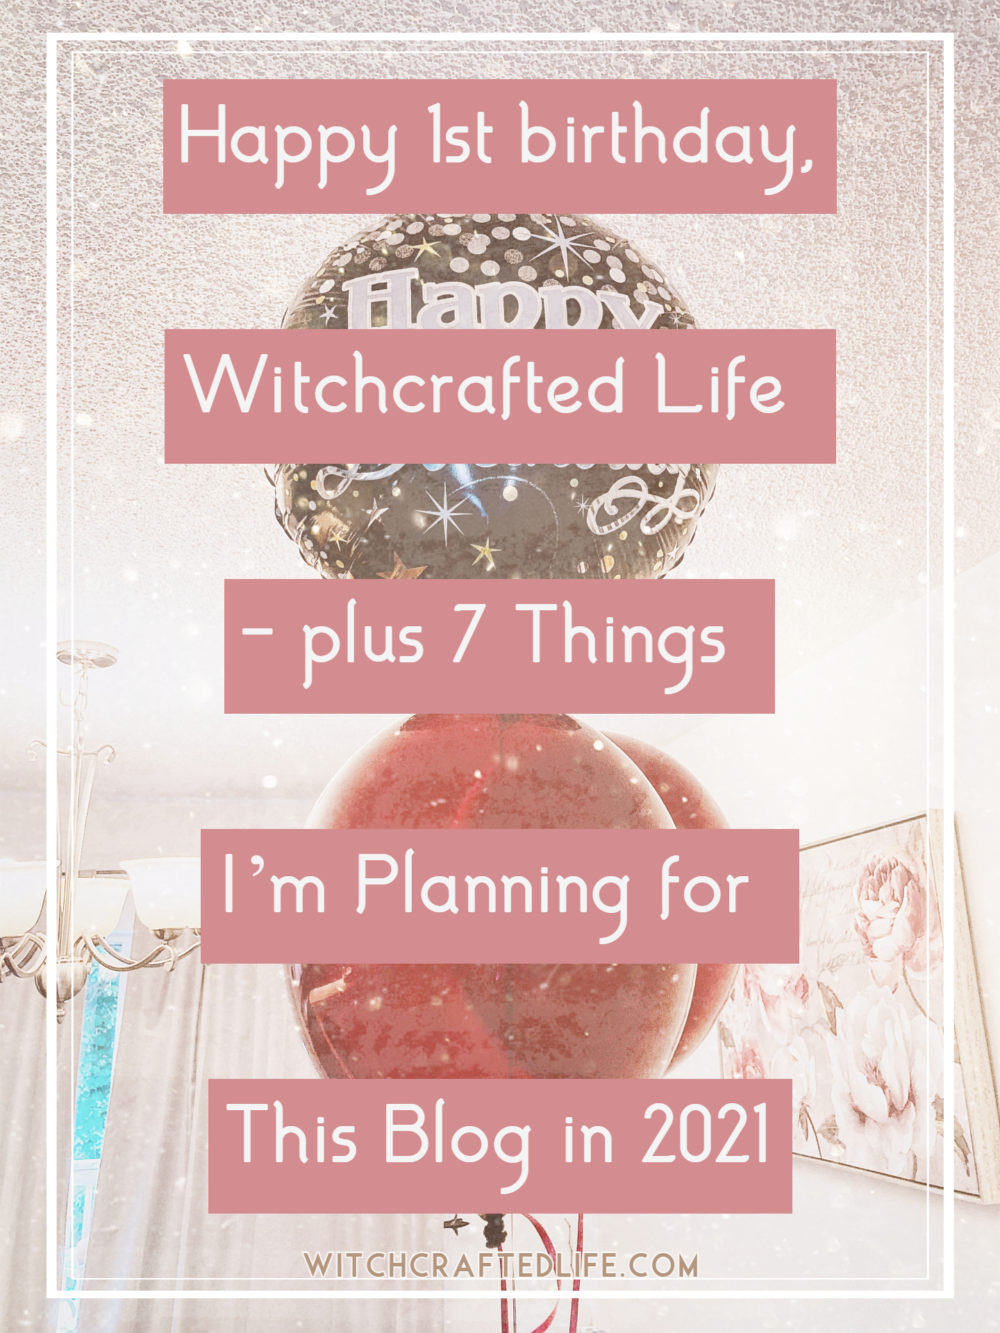 Happy 1st birthday, WitchcraftedLife.com